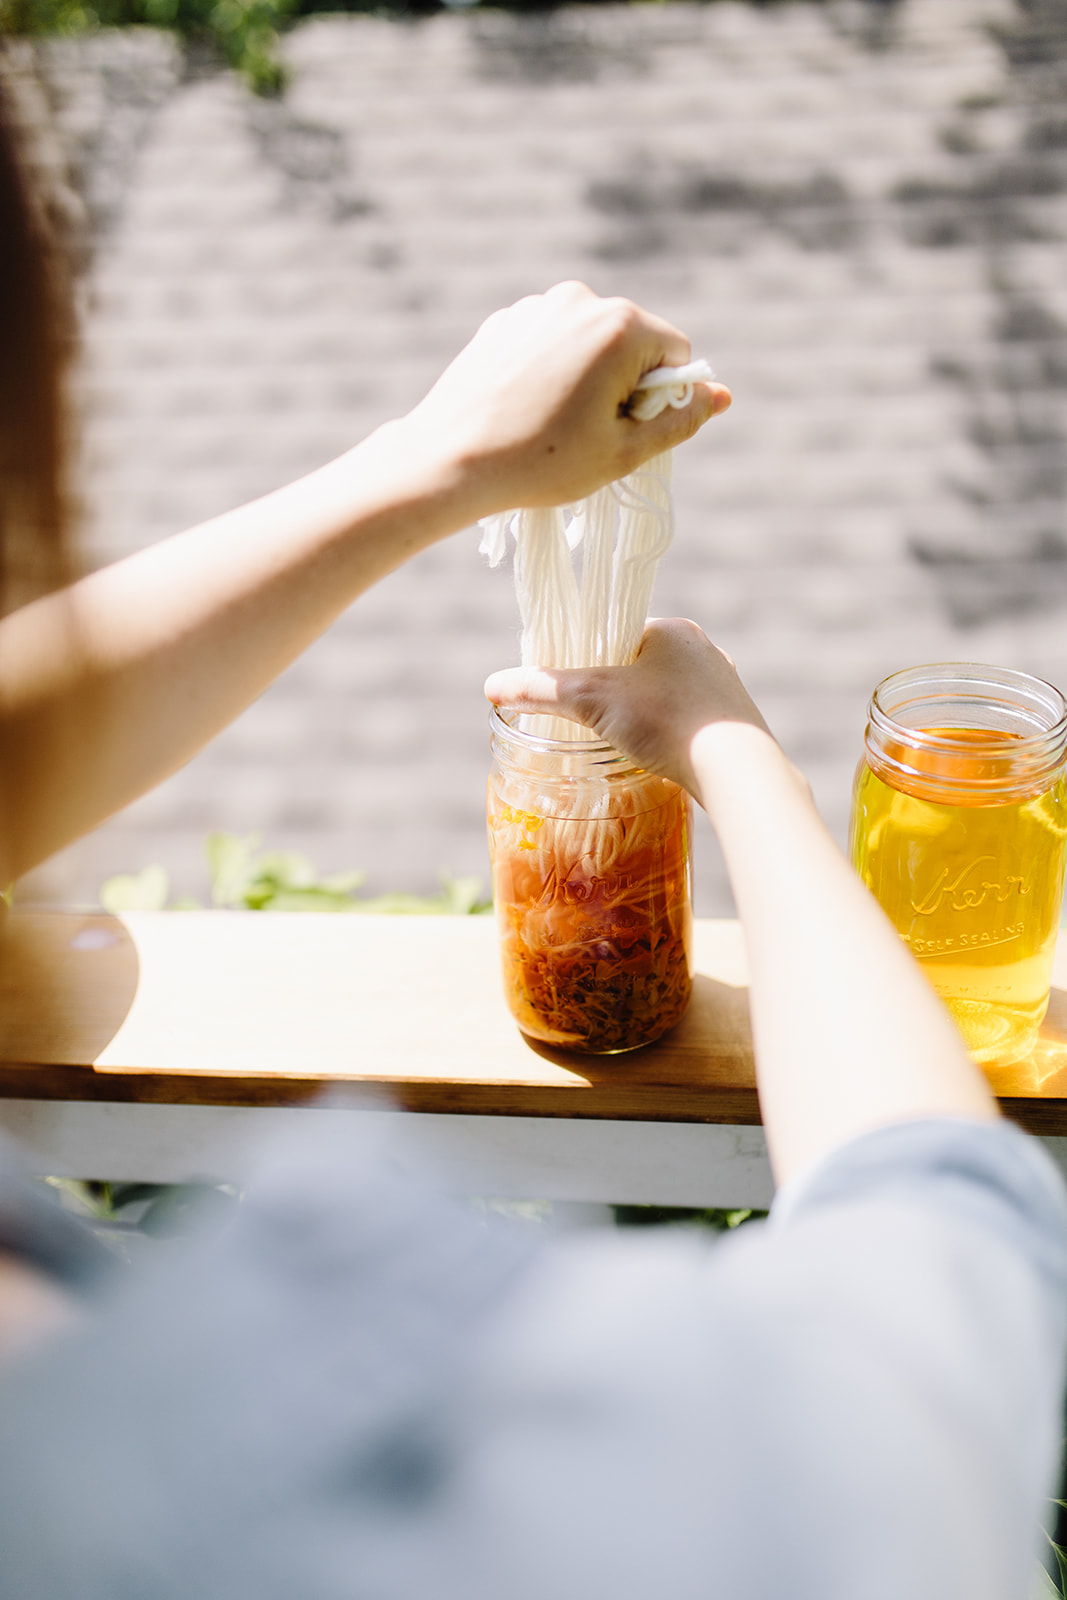 the simplest solar dye tutorail: add your yarn to the jar, close it up and wait for the sun to do it's magic!